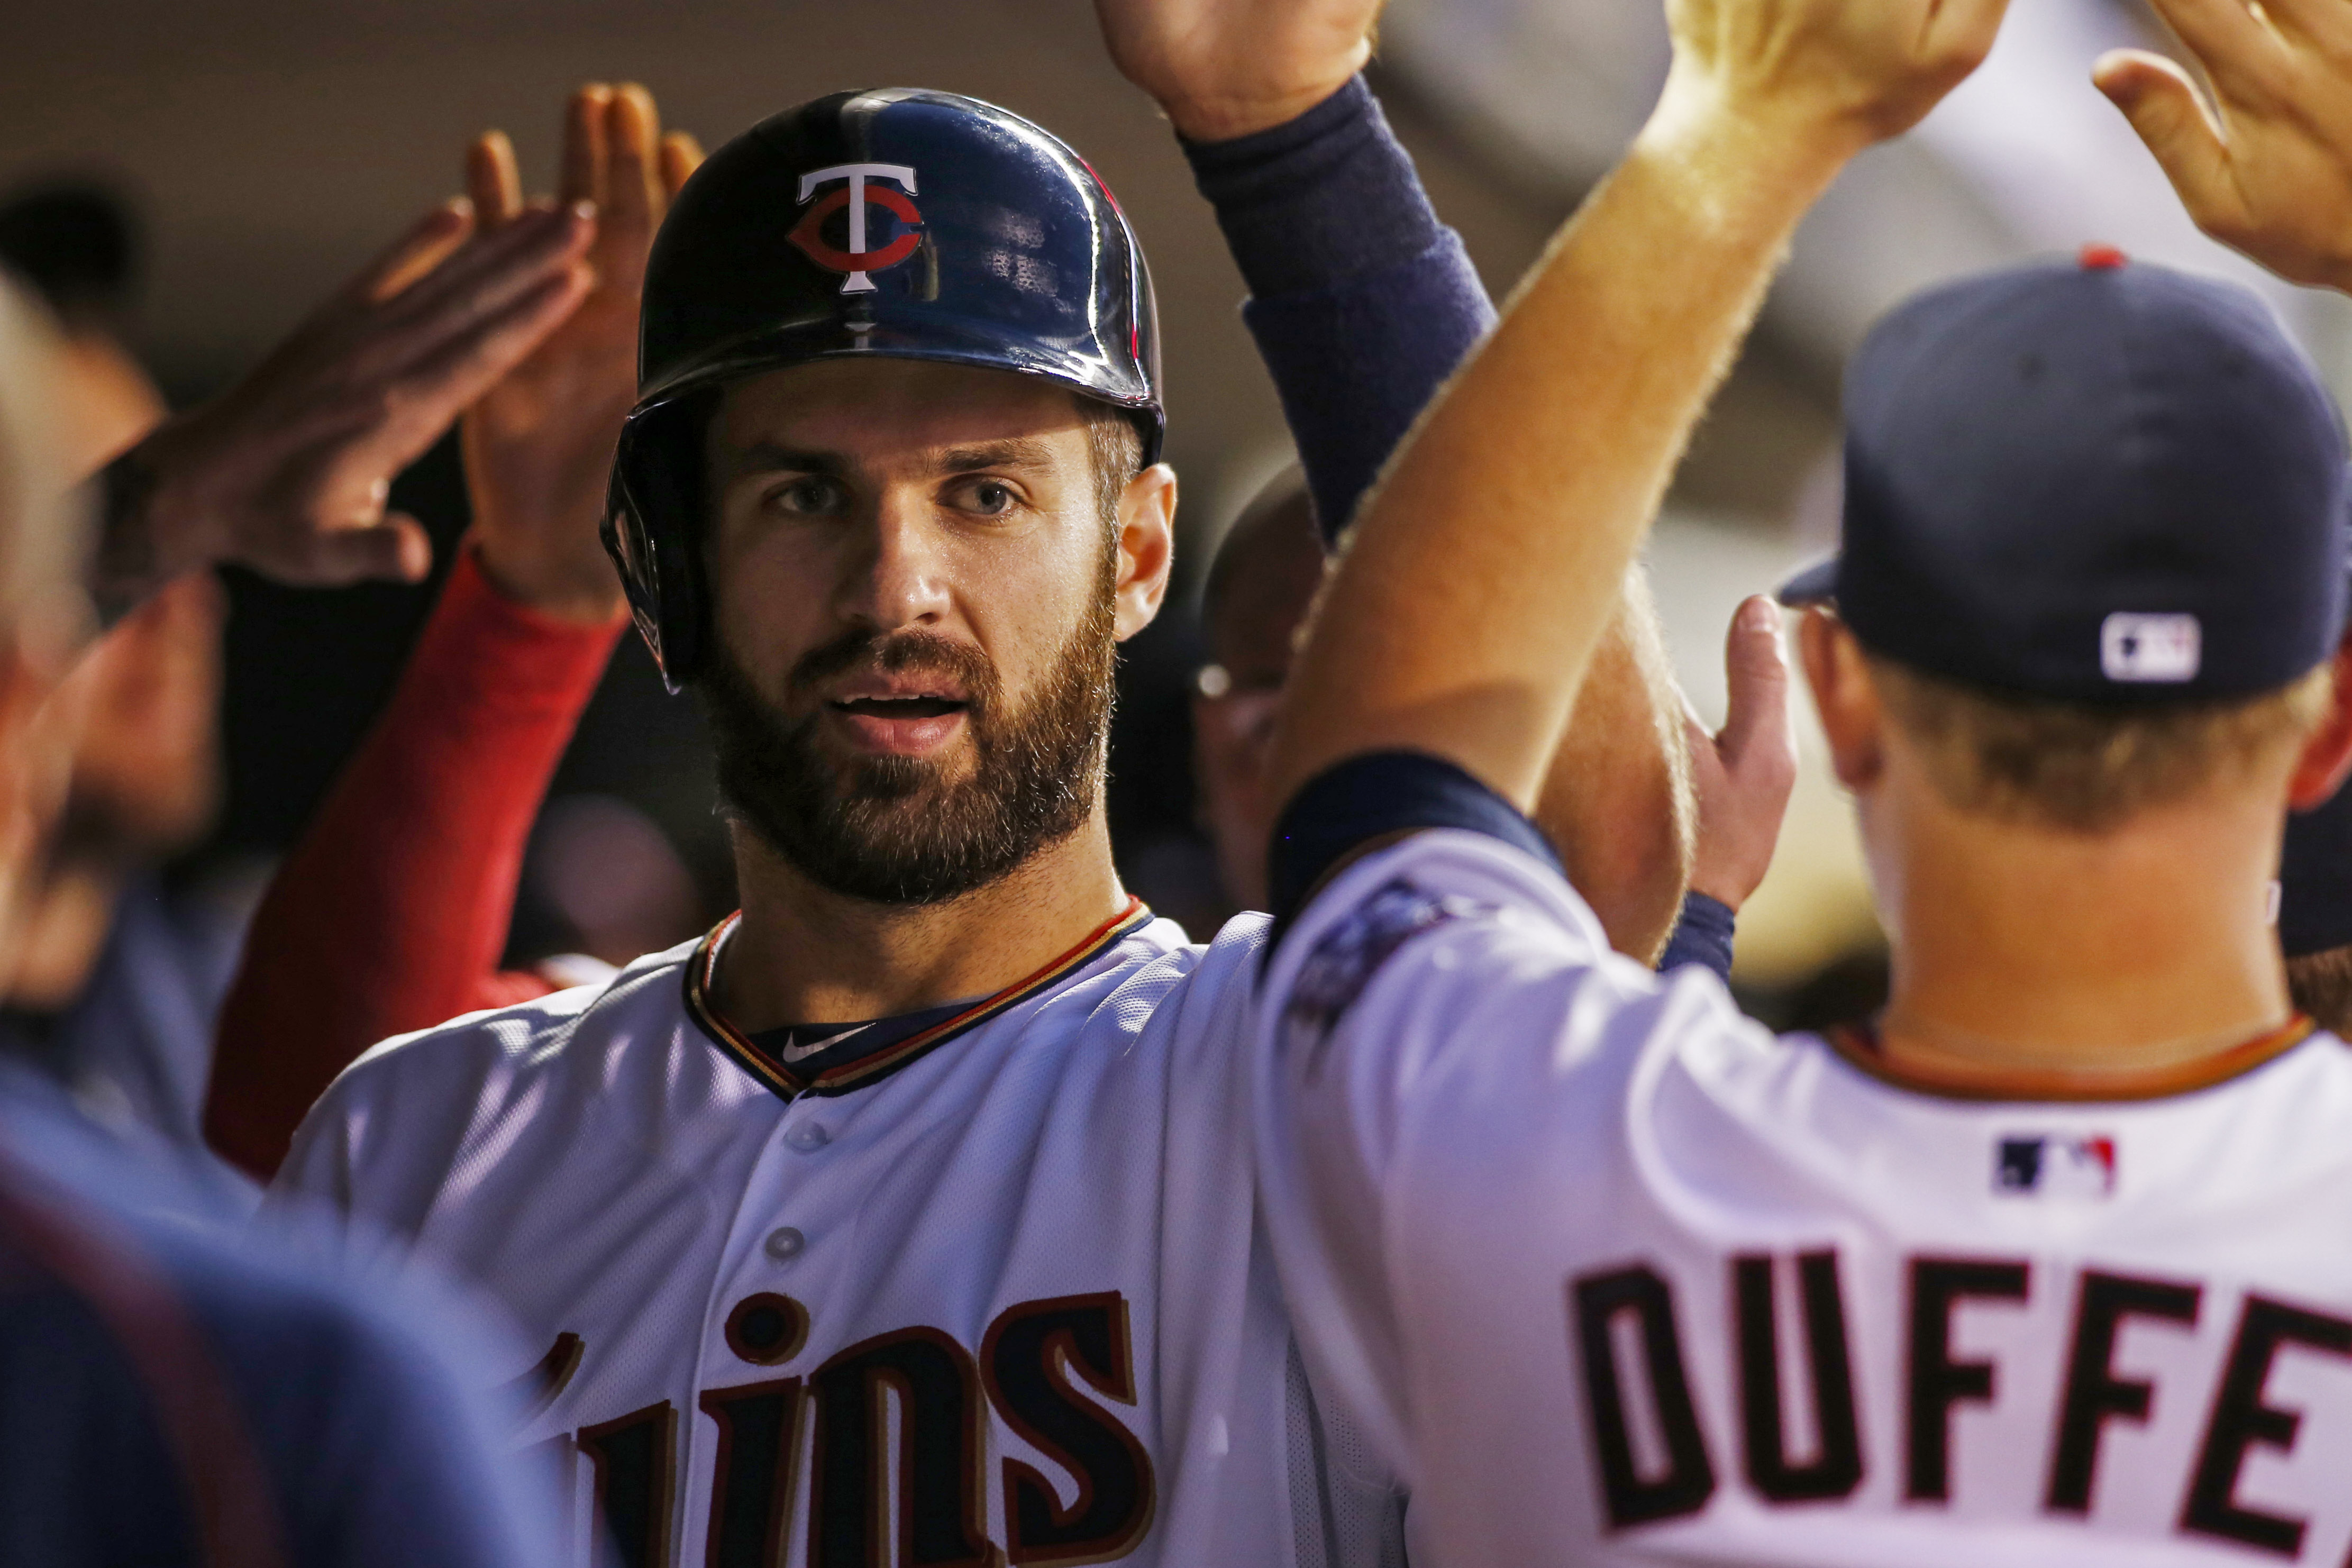 FILE - In this Sept. 14, 2015, file photo, Minnesota Twins first baseman Joe Mauer (7) celebrates his run against the Detroit Tigers in the first inning of a baseball game, in Minneapolis. Joe Mauer hasn't been the same since his concussion in 2013 forced